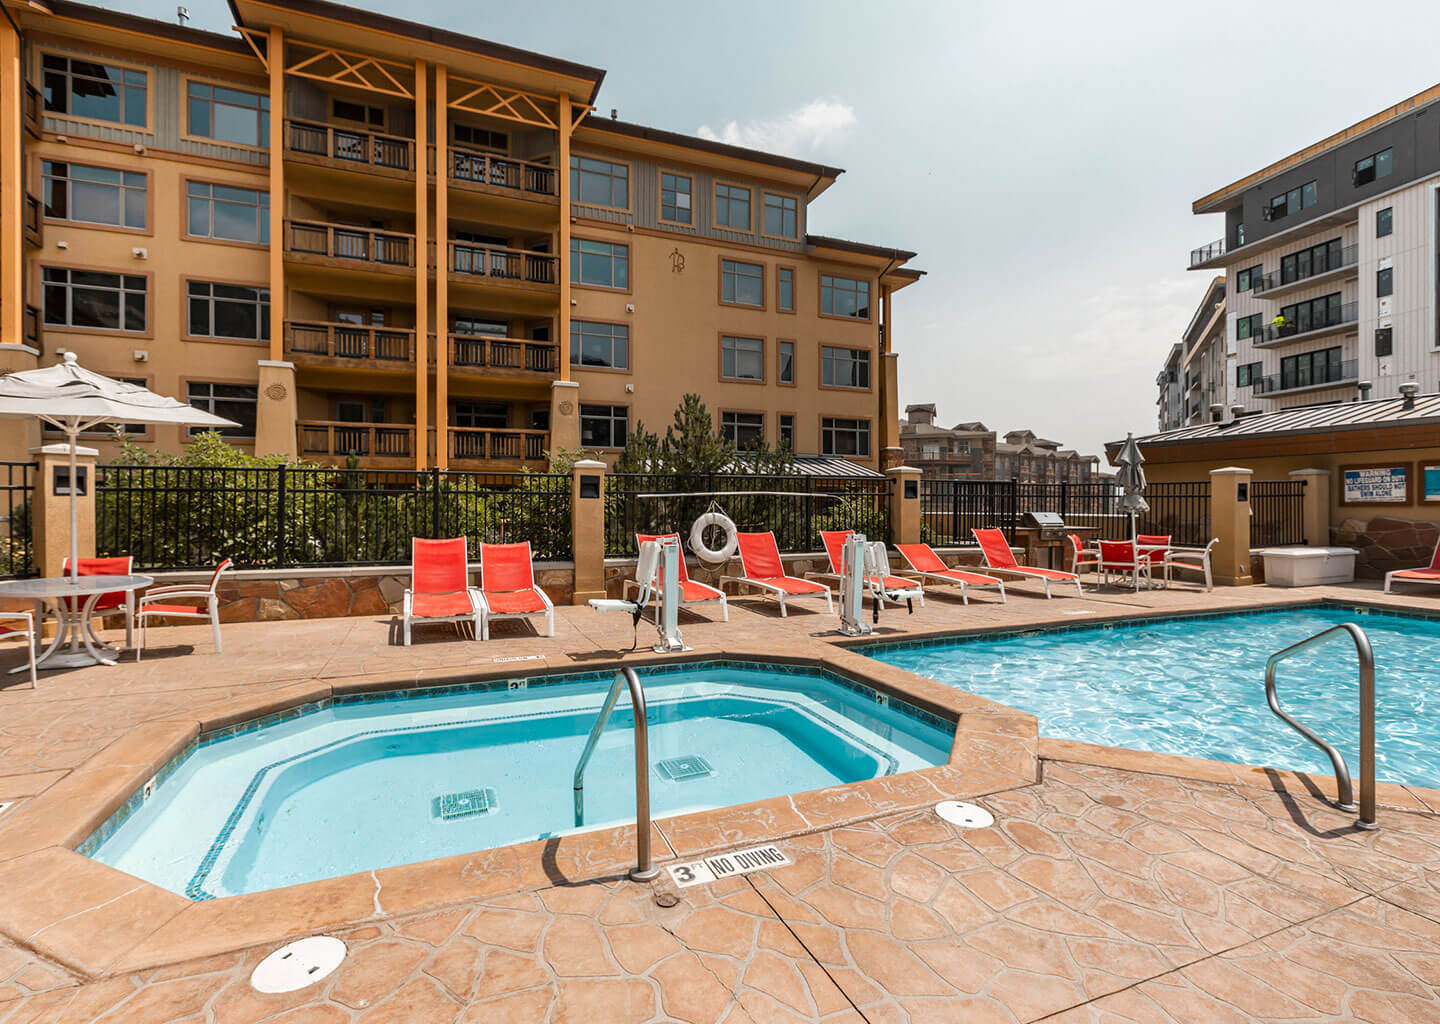 The Glistening Outdoor Pool at Sundial Lodge in Park City, Utah